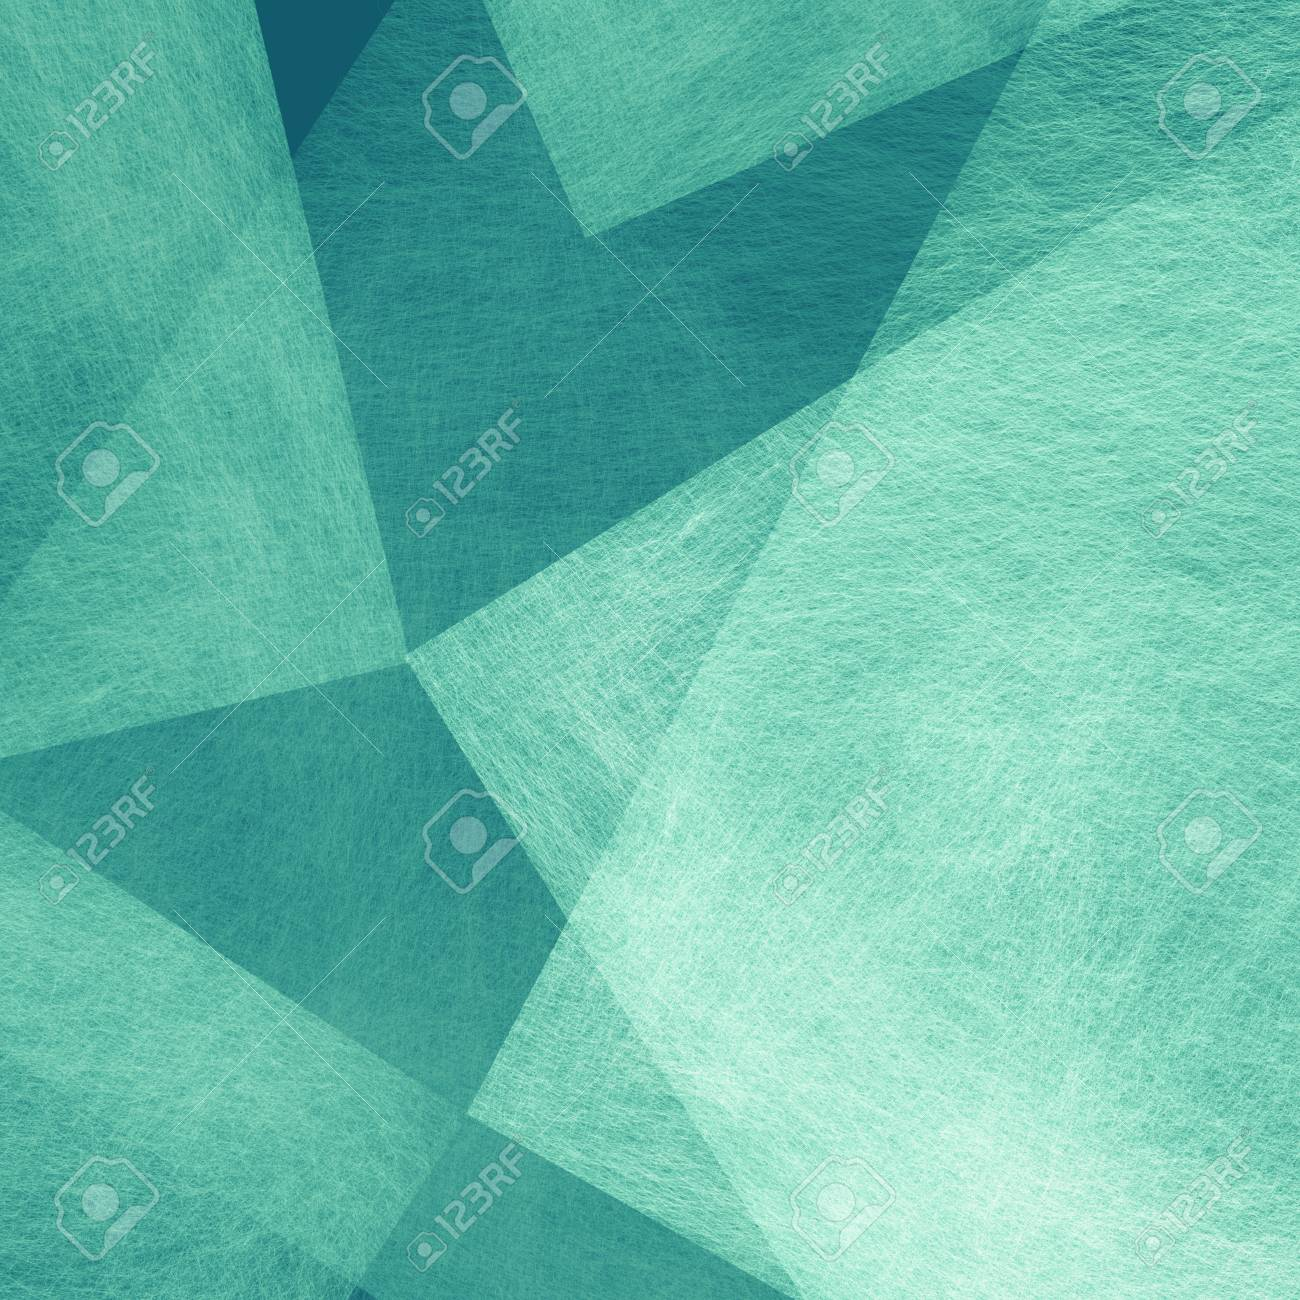 abstract blue green background of transparent white triangle and square shapes layered in elegant classy design